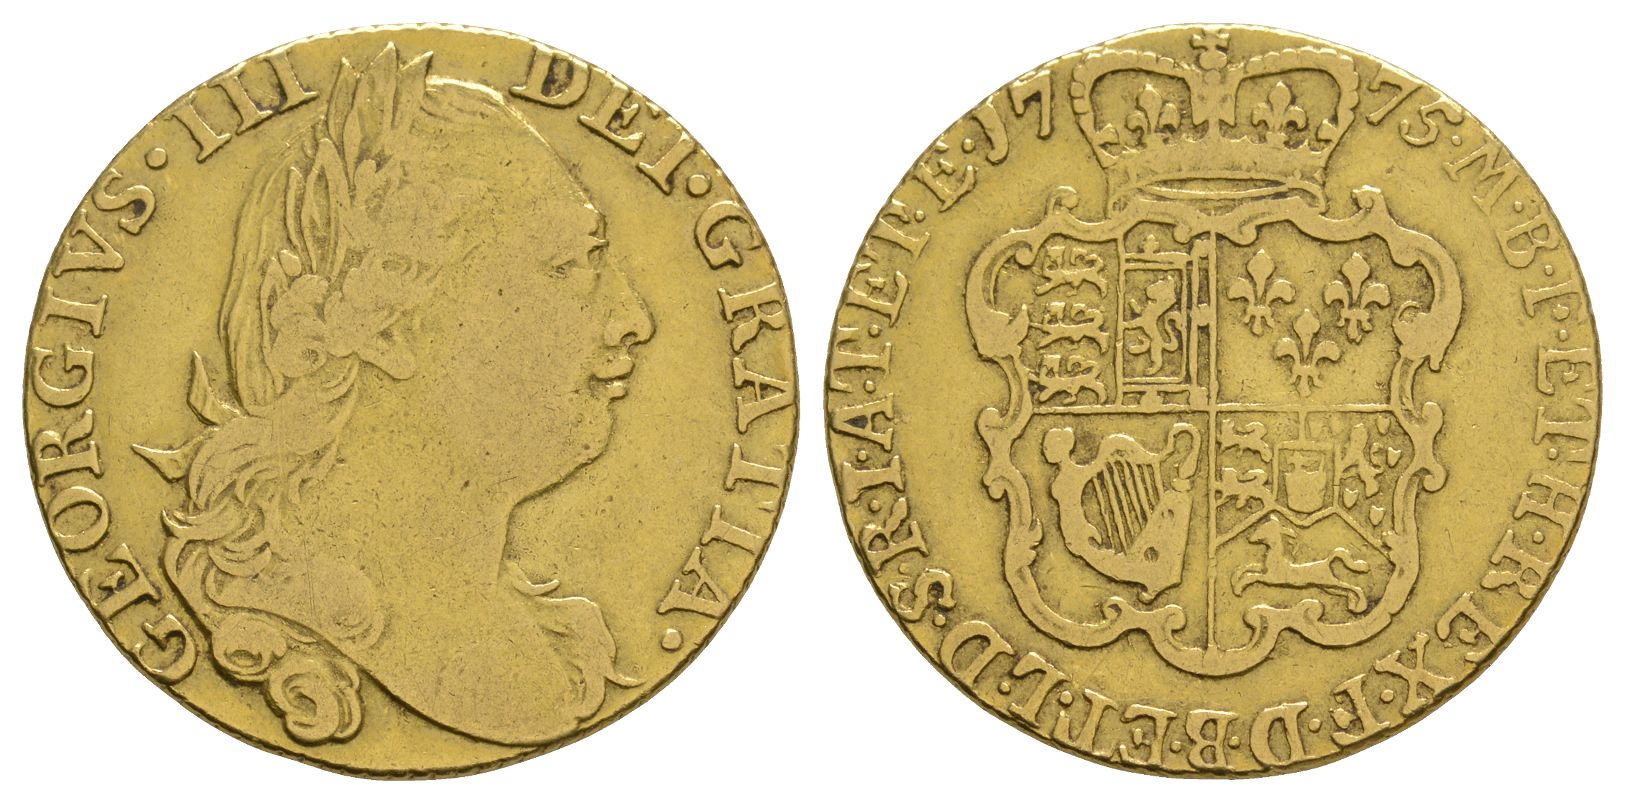 English Milled Coins - George III - 1775 - Gold Guinea